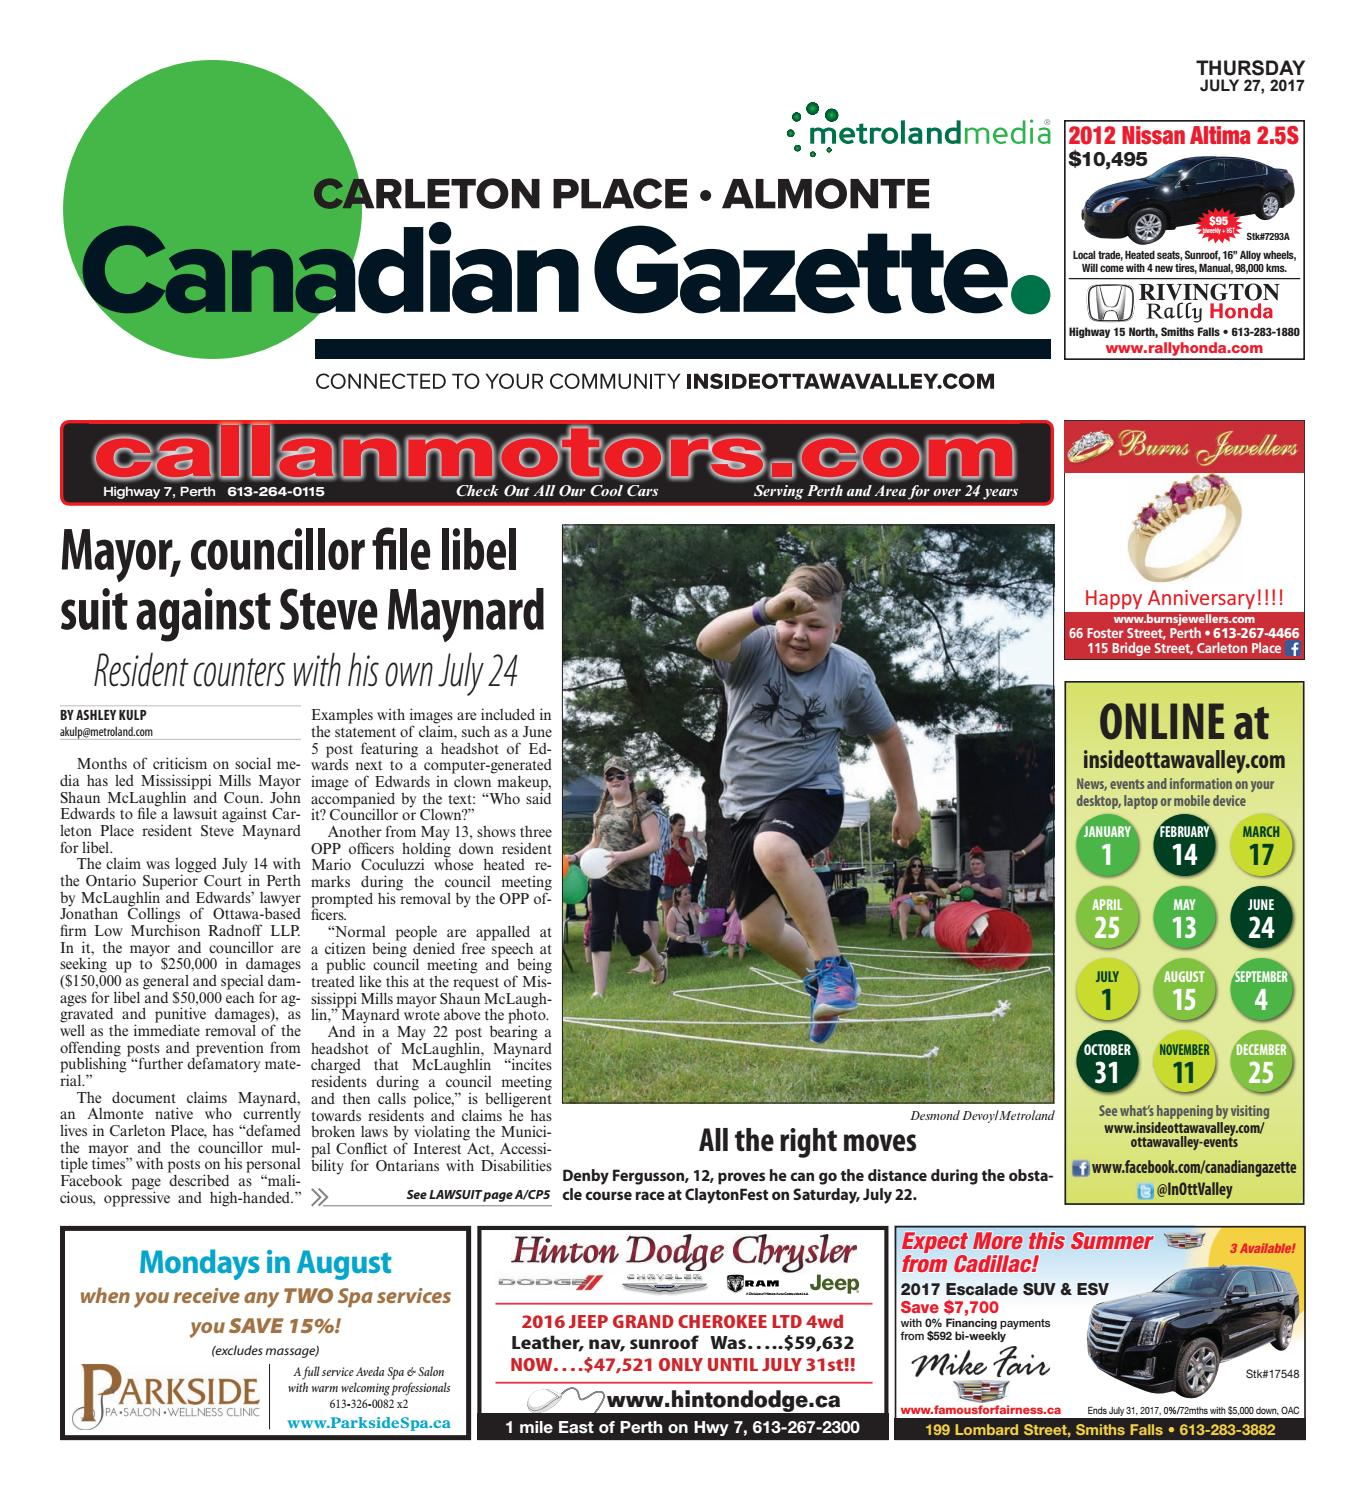 Almontecarletonplace072717 by Metroland East - Almonte Carleton Place  Canadian Gazette - issuu